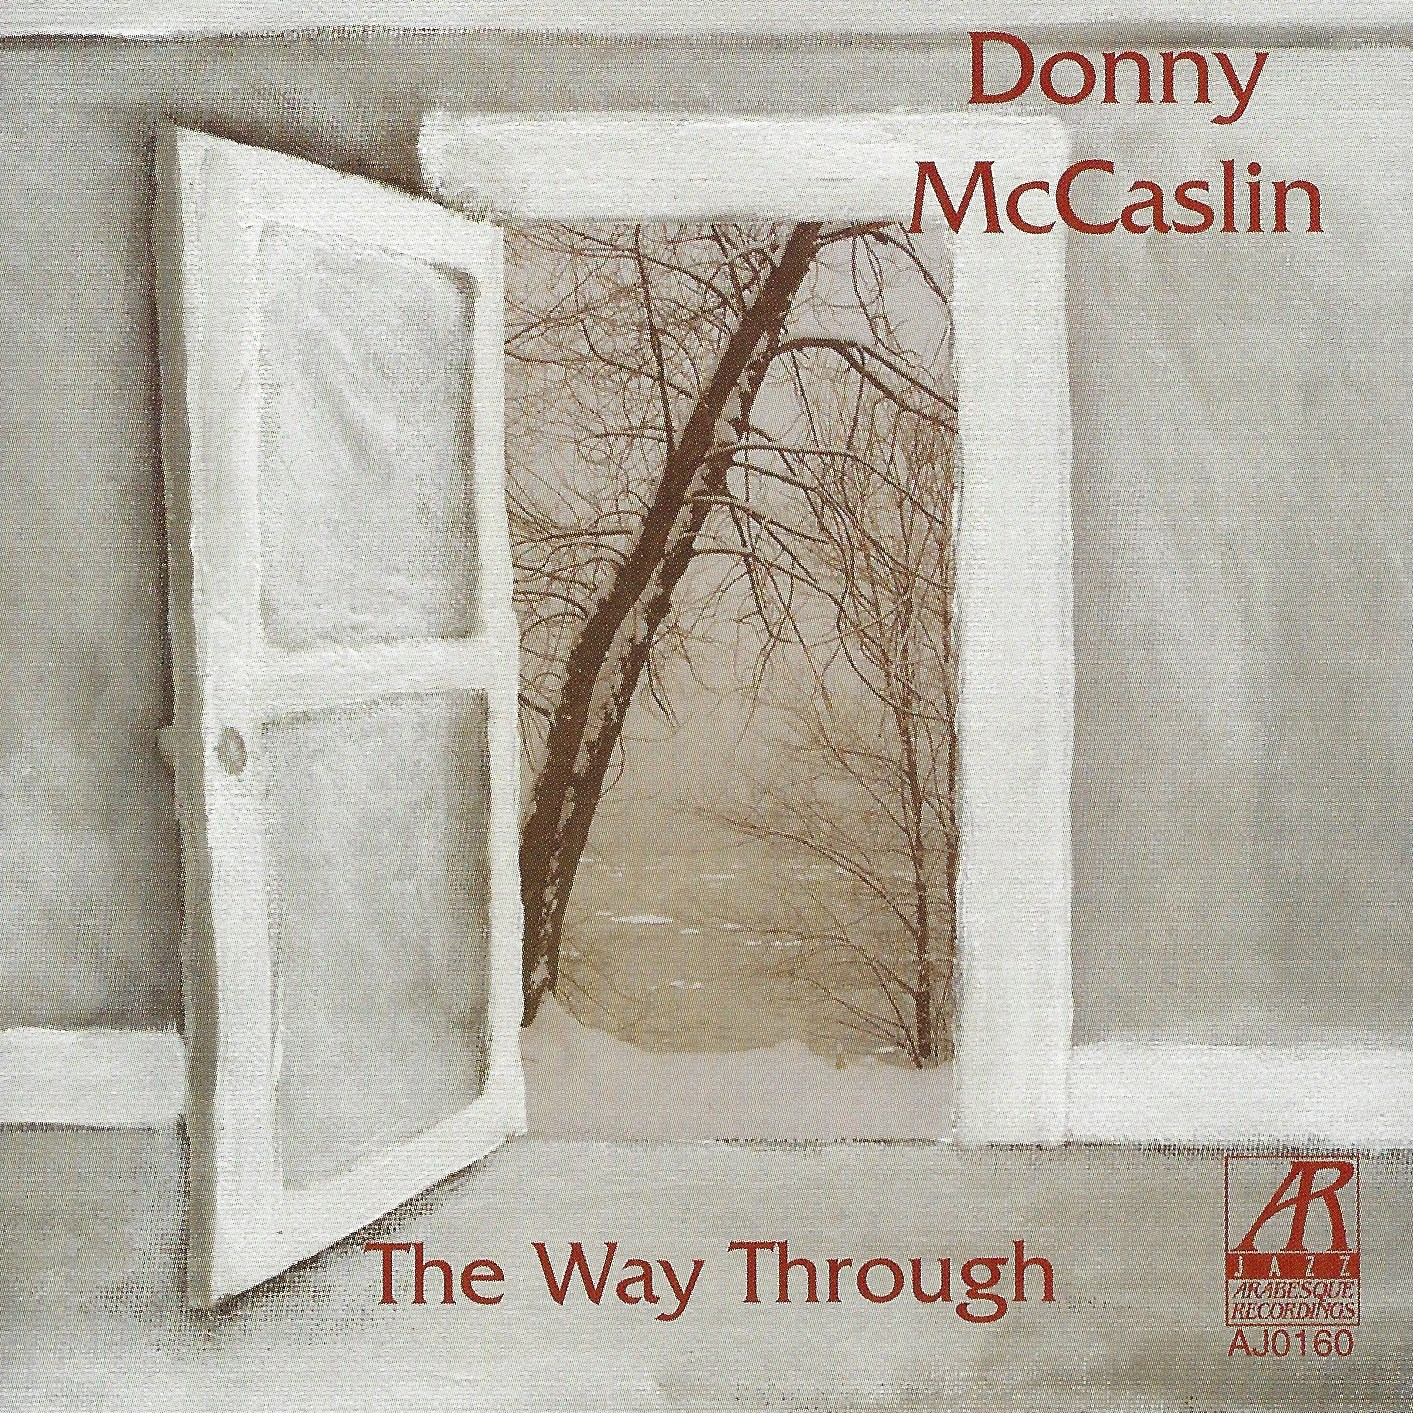 AJ0160  | The Way Through |  Donny McCaslin